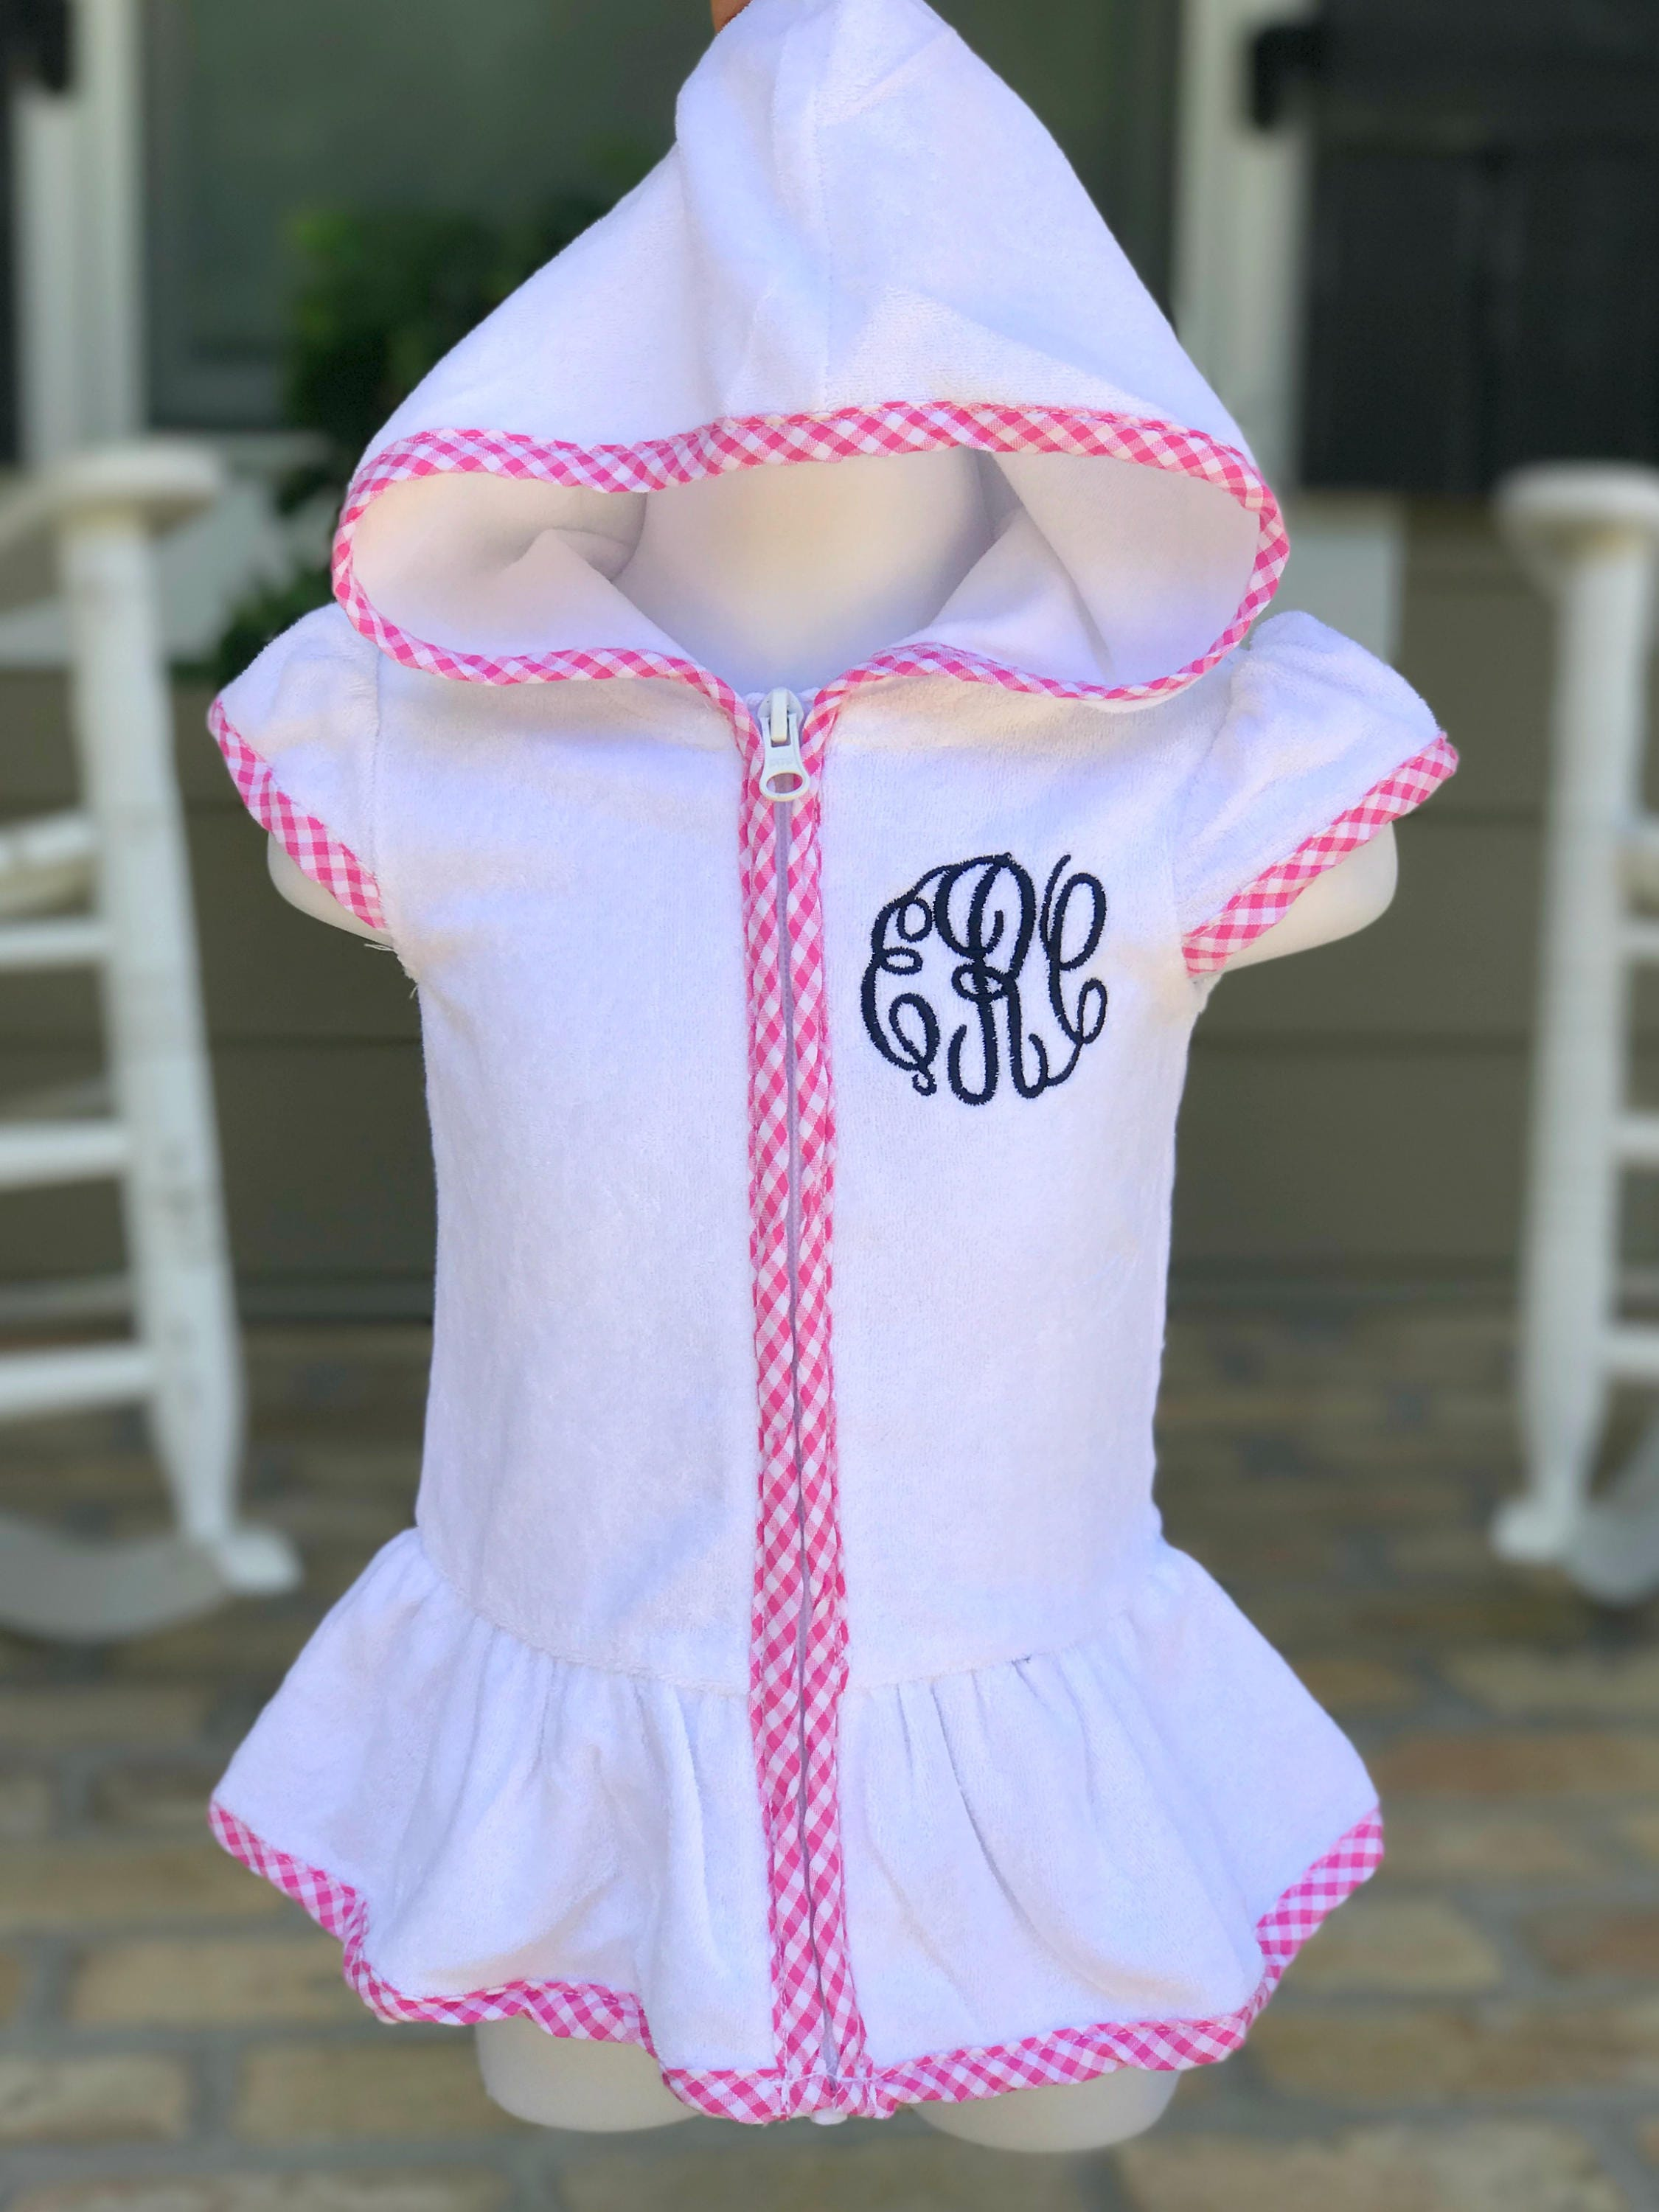 04d8ea63c79e4 Girls Monogrammed Terry Cloth Cover Up